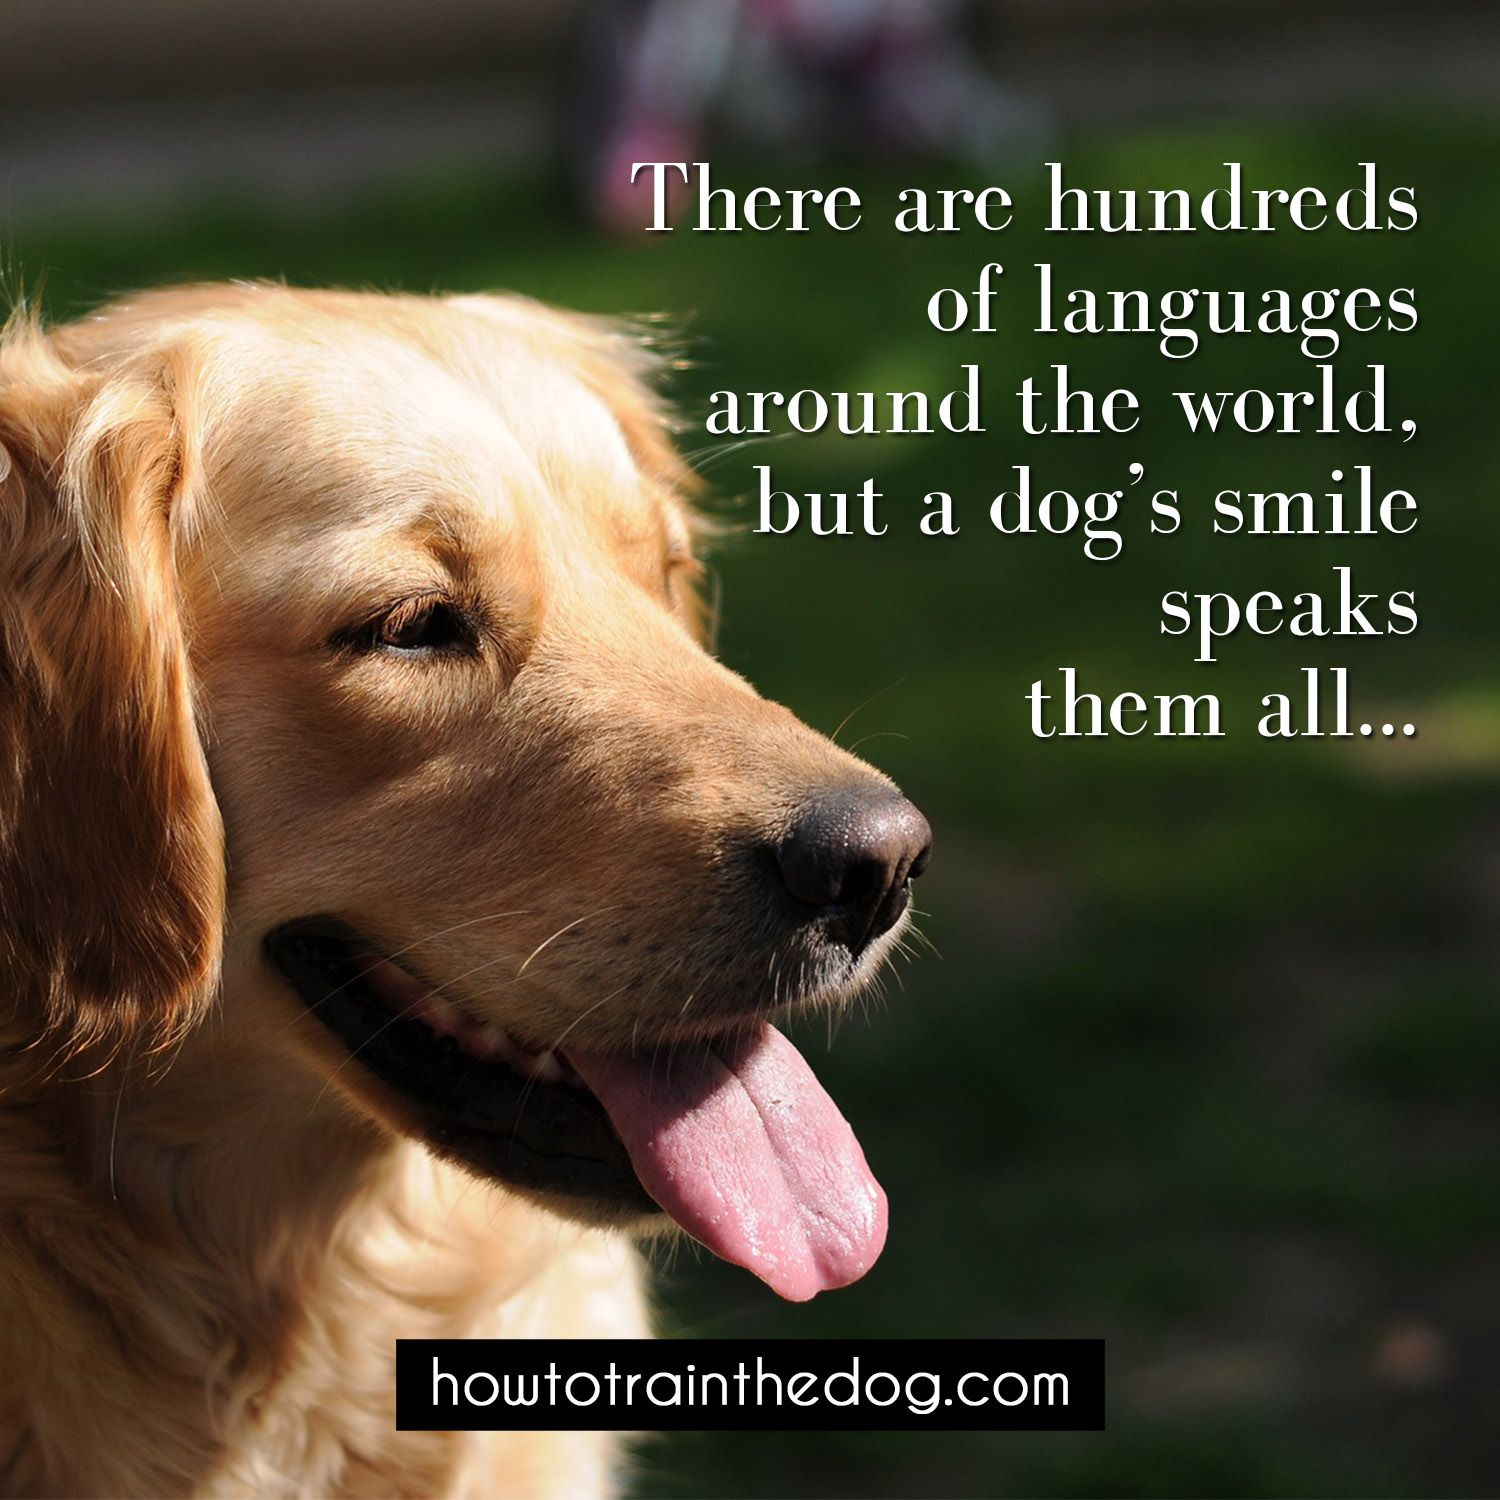 Quotes About Dog Friendship There Are Hundreds Of Languages Around The World But A Dog's